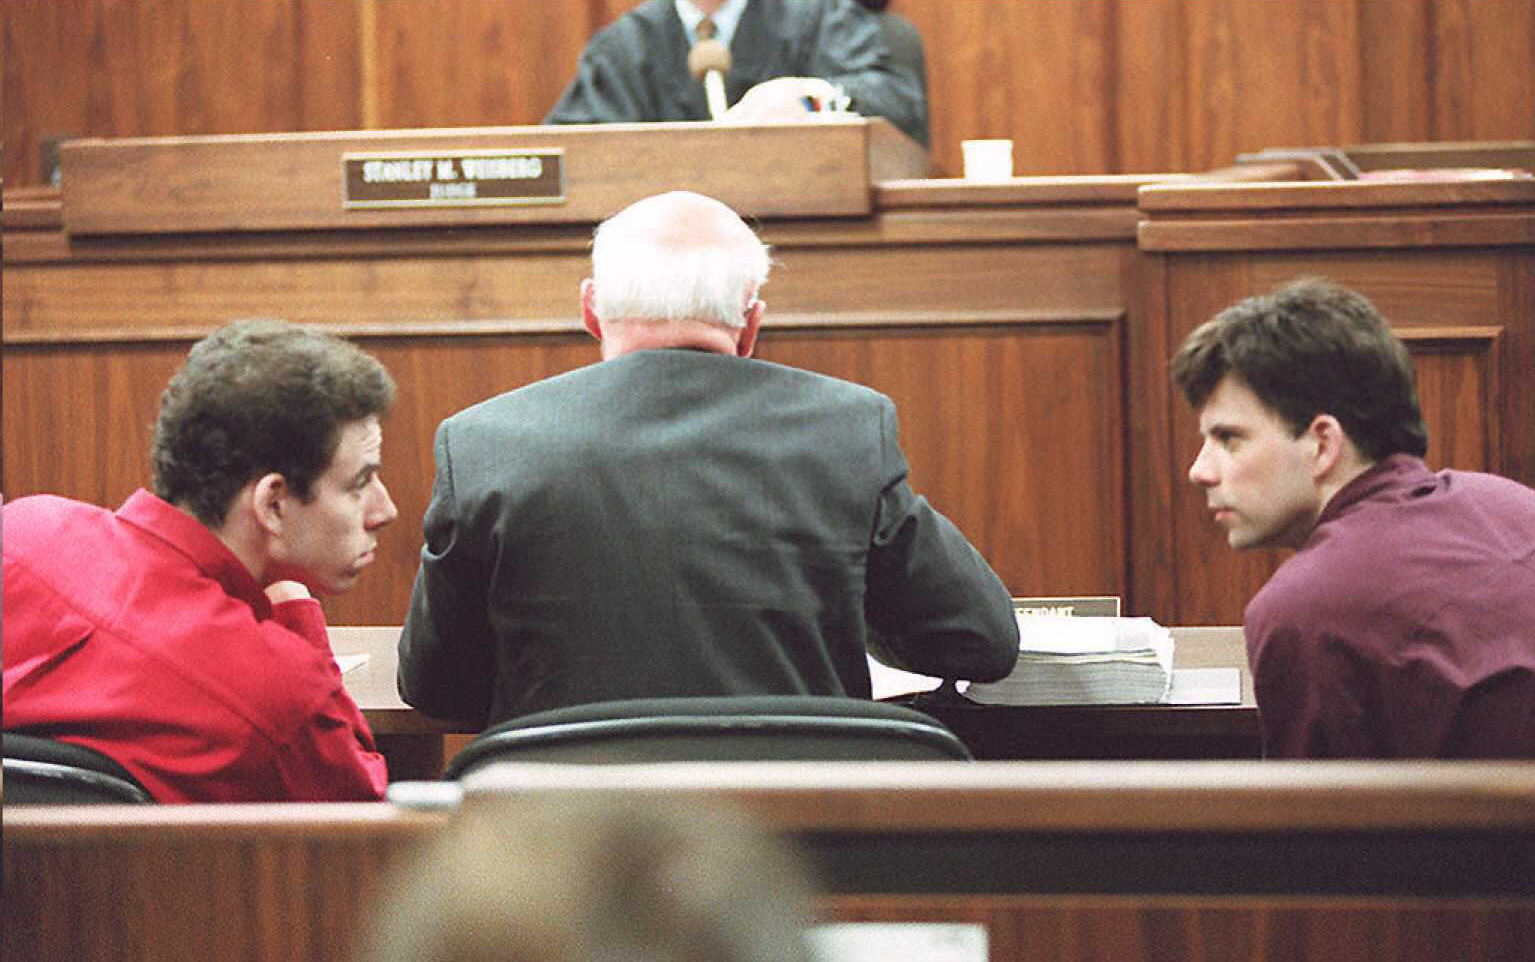 picture-of-menendez-brothers-court-photo.jpg